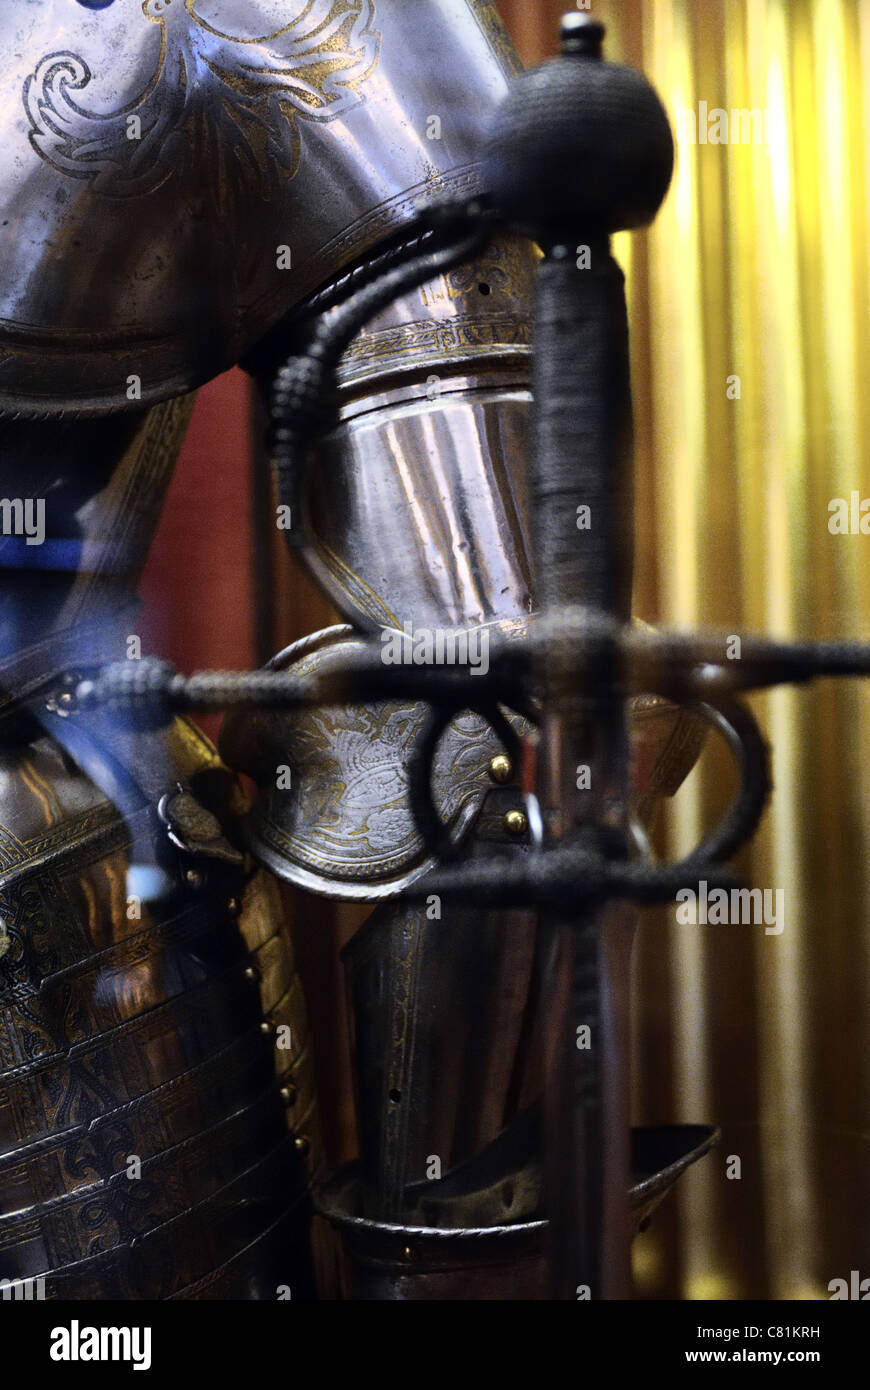 Mid section view of suit of armor, Hermitage Museum, St. Petersburg, Russia - Stock Image